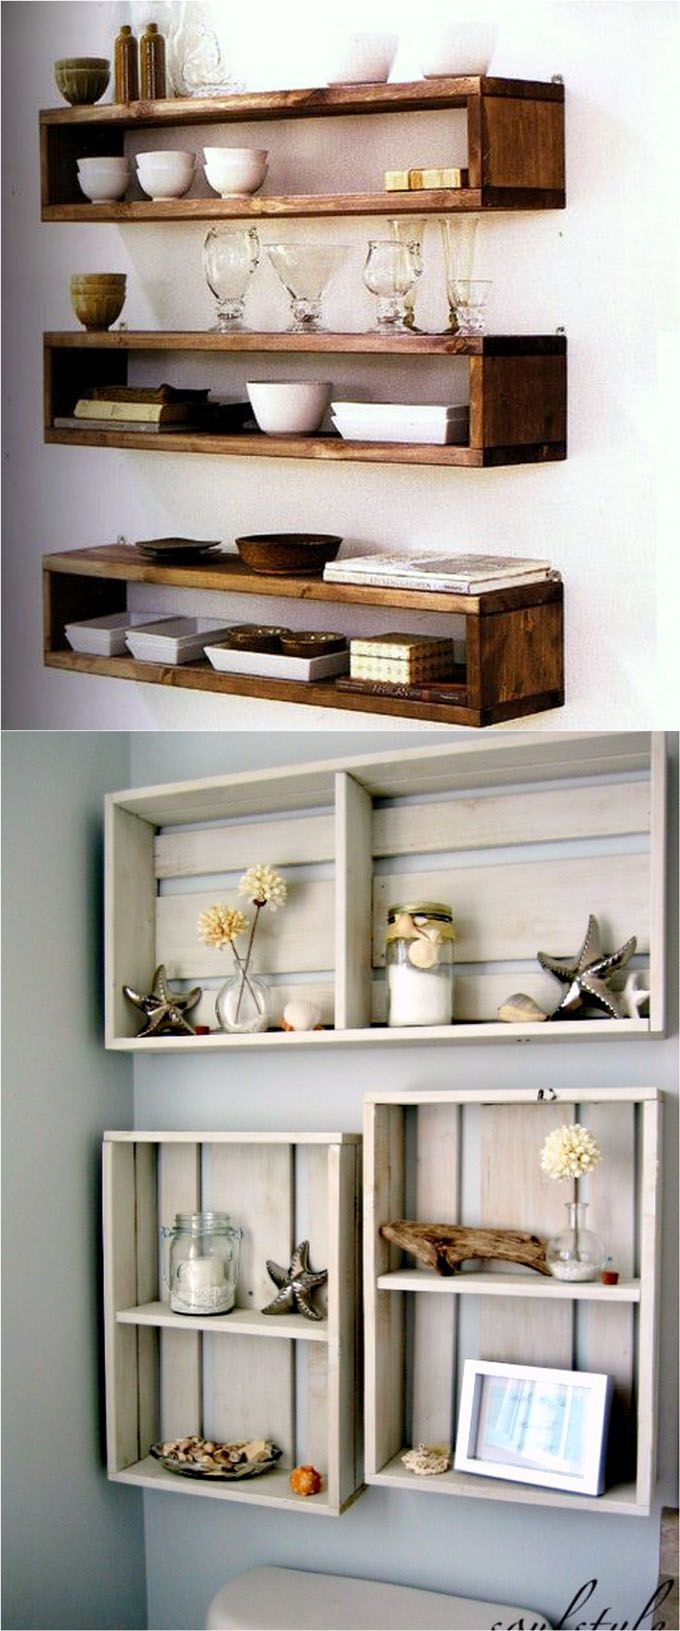 16 Easy and Stylish DIY Floating Shelves & Wall Shelves – Mollie Muir